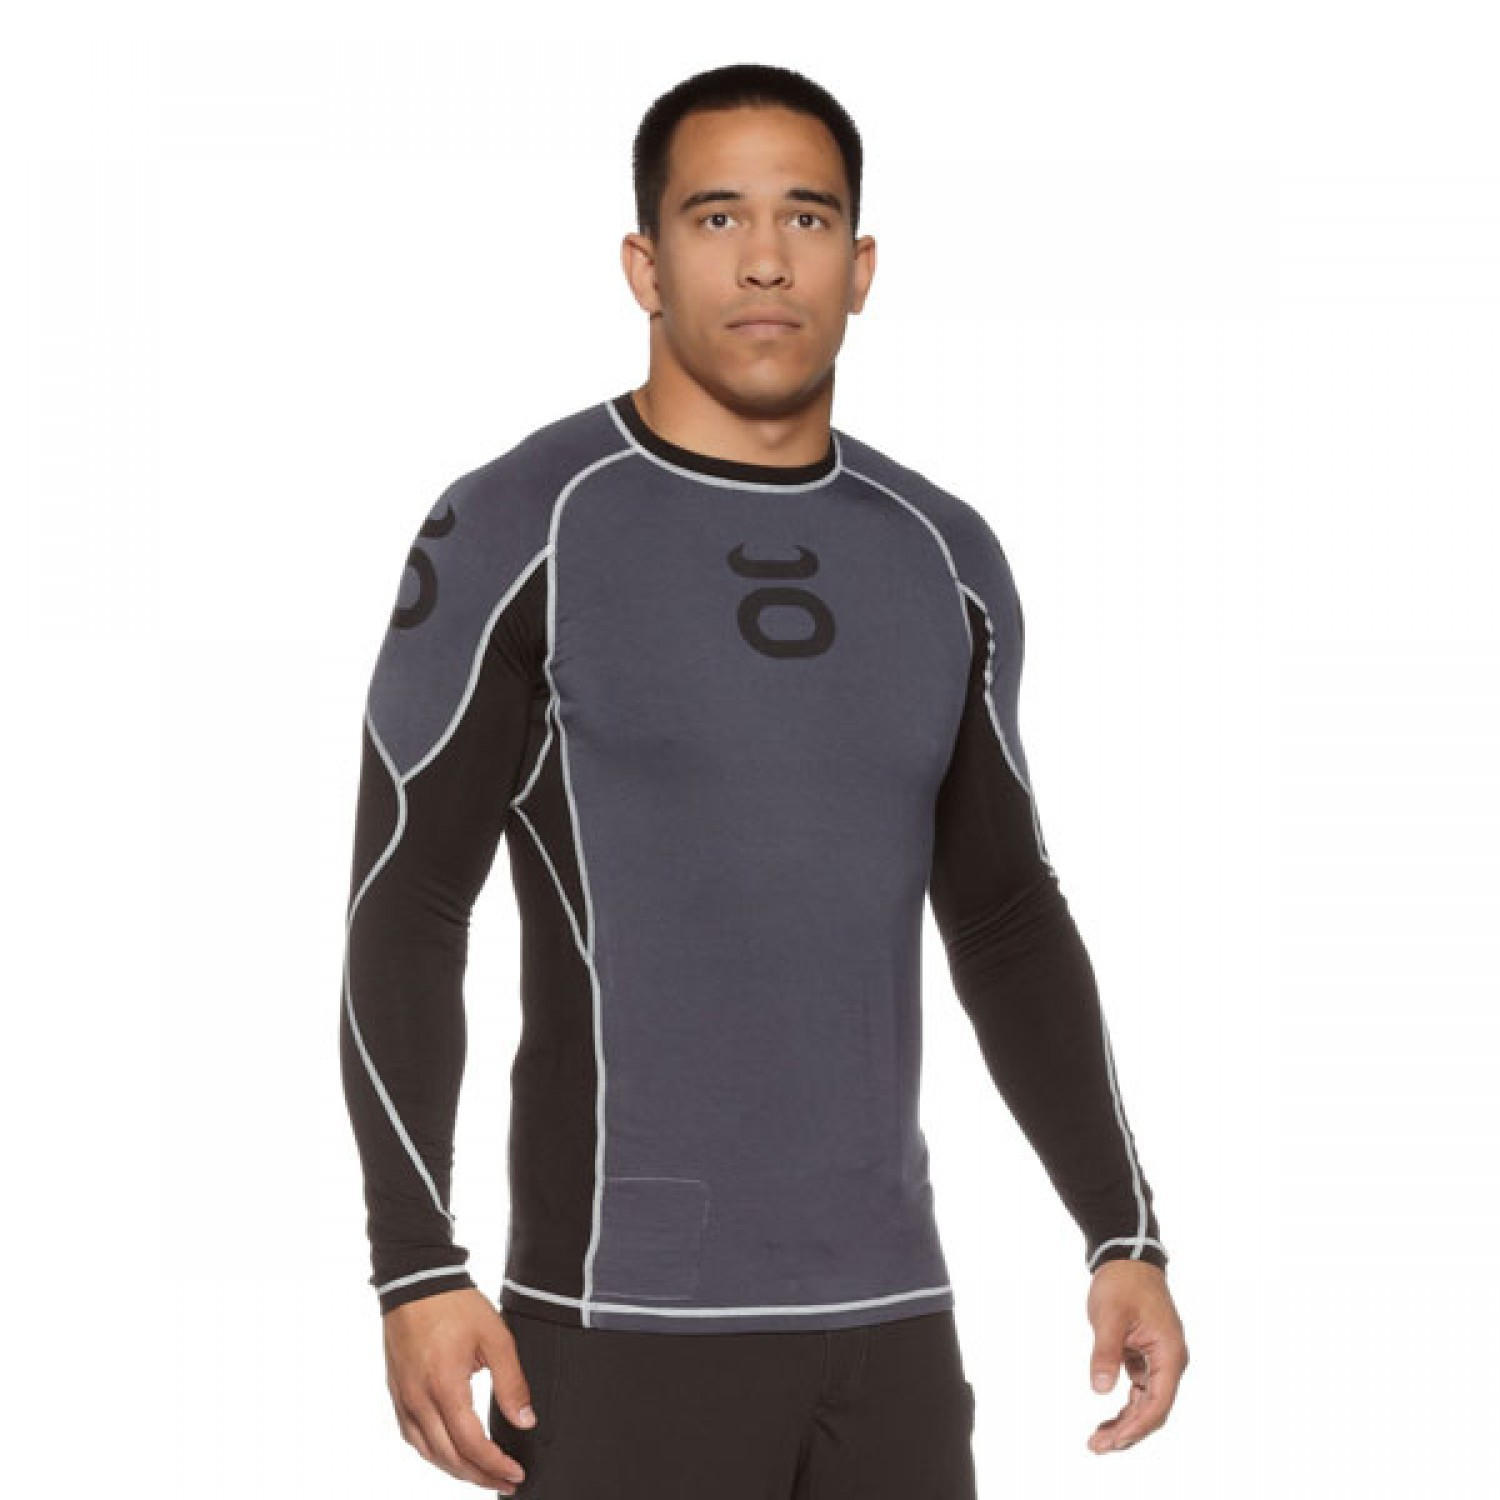 Bamboo Performance Training Top - Long Sleeve (Nubious Grey)